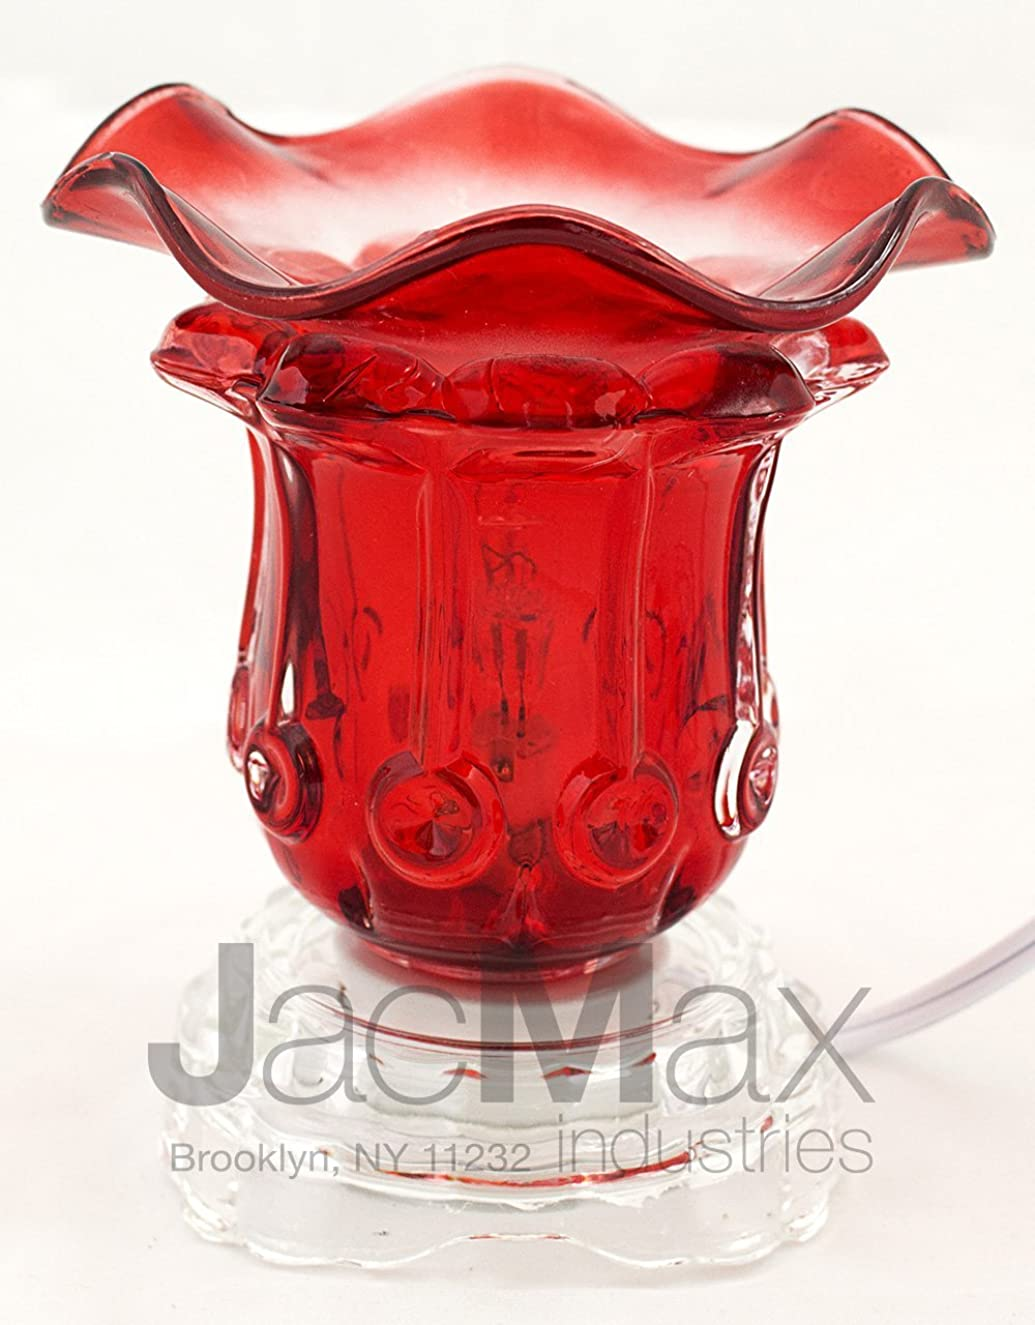 Expressive Scent Electric Burner for Oil and Wax Melts - Fragrance Oil Lamp RED EB01